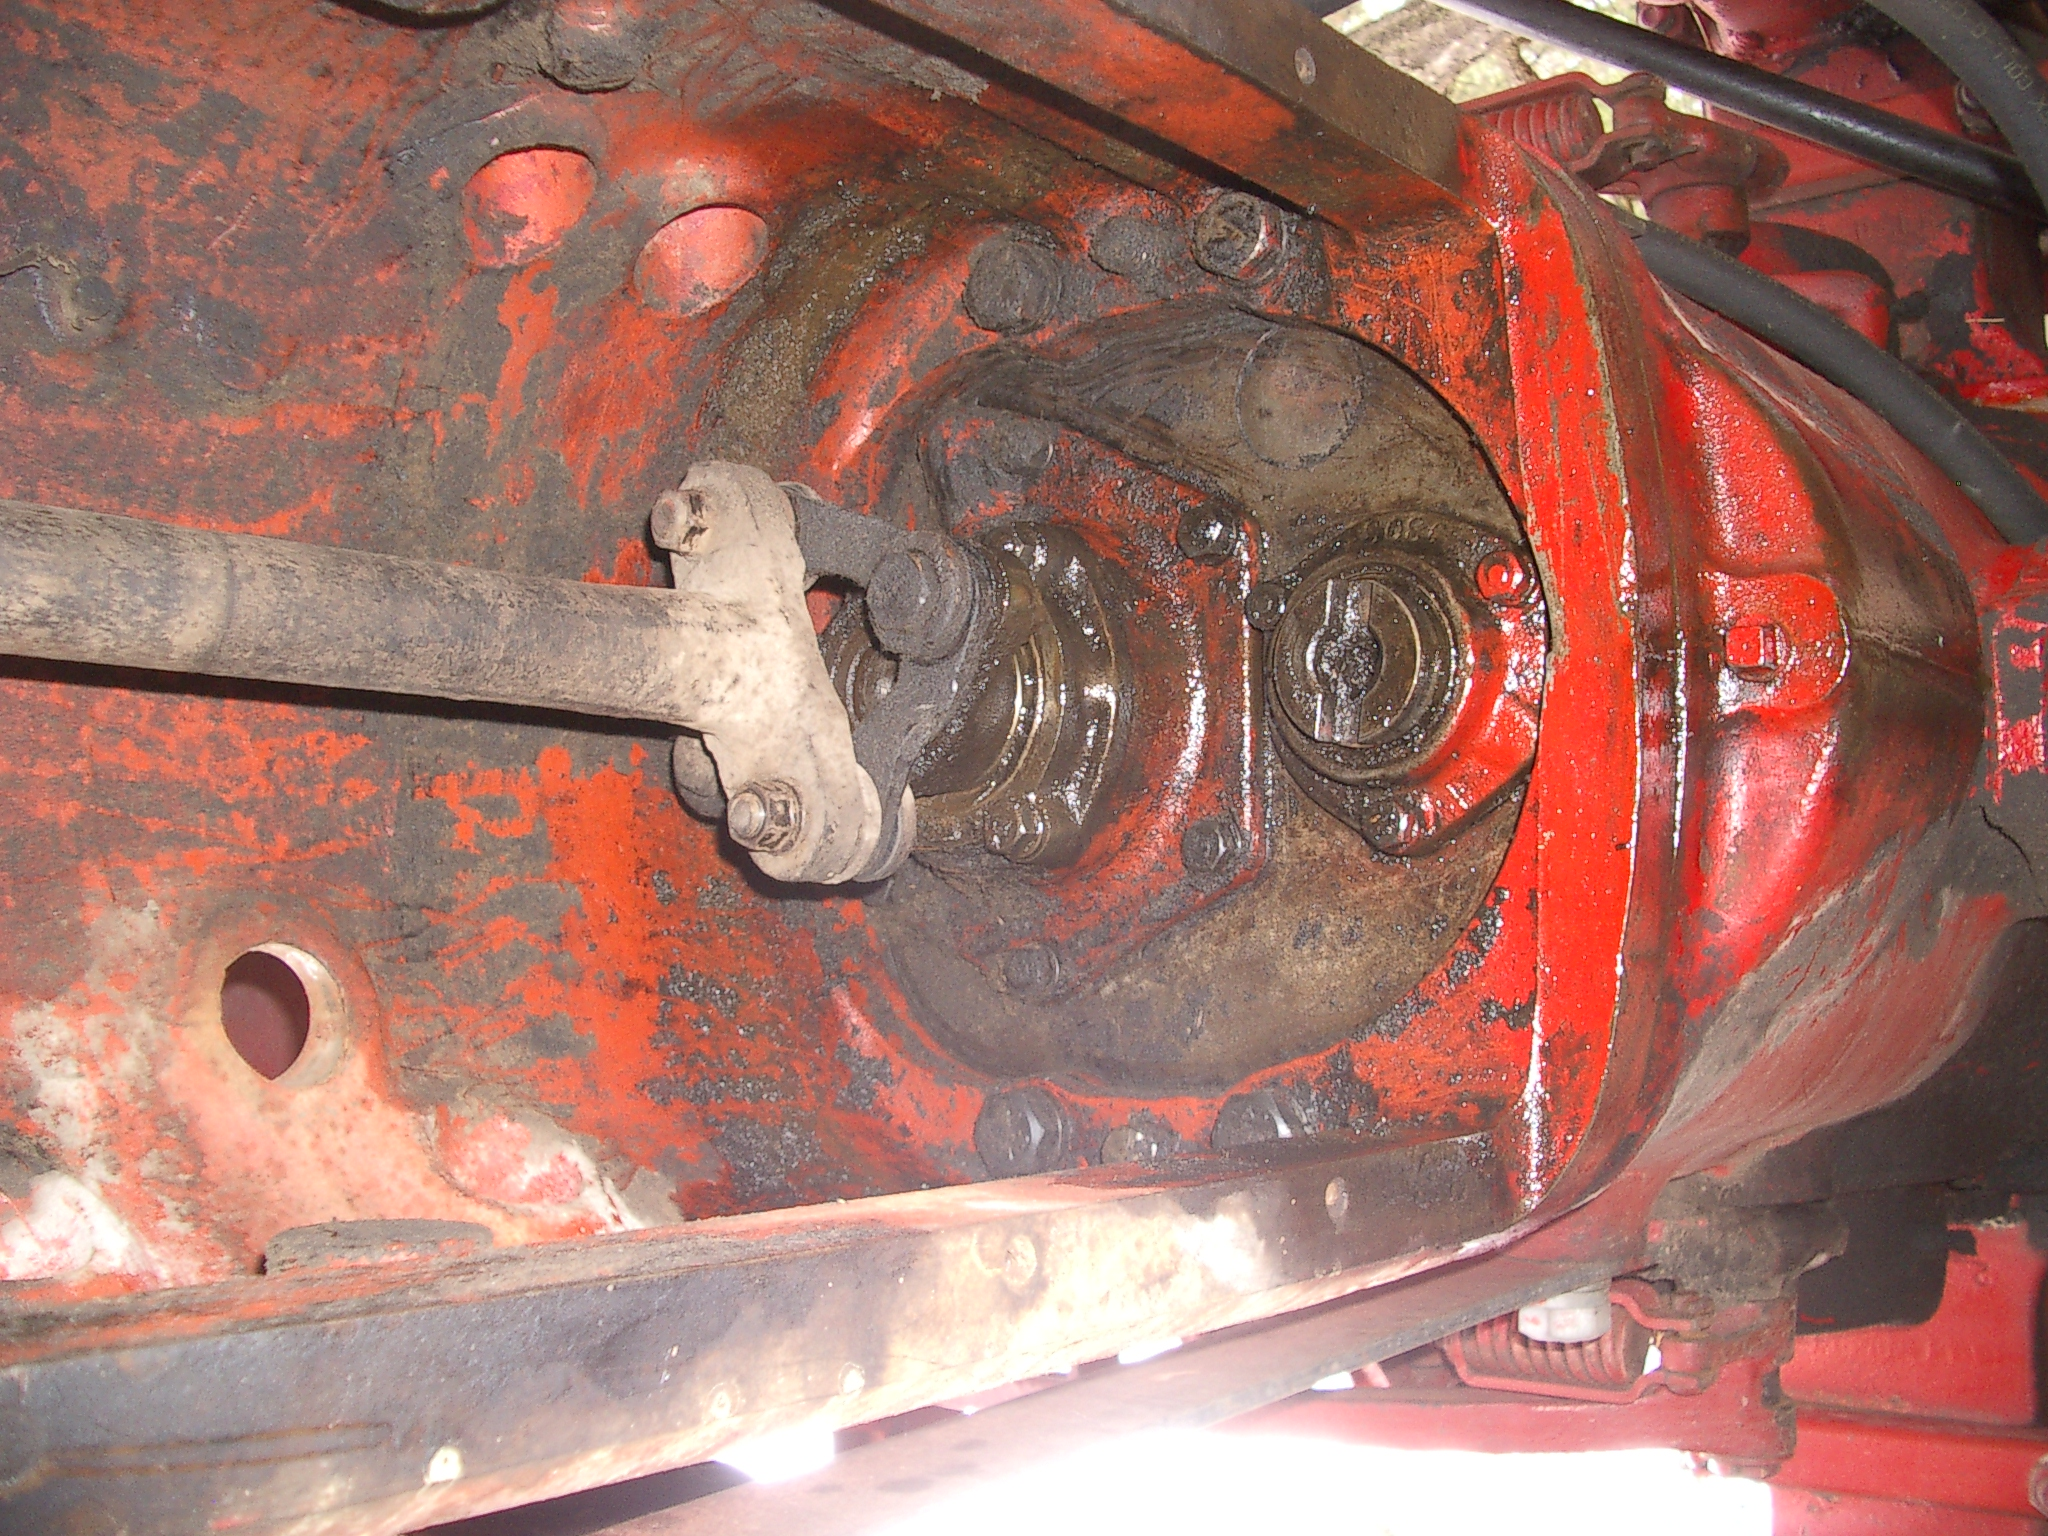 1951 H, Replace front seal/bearing    - Yesterday's Tractors